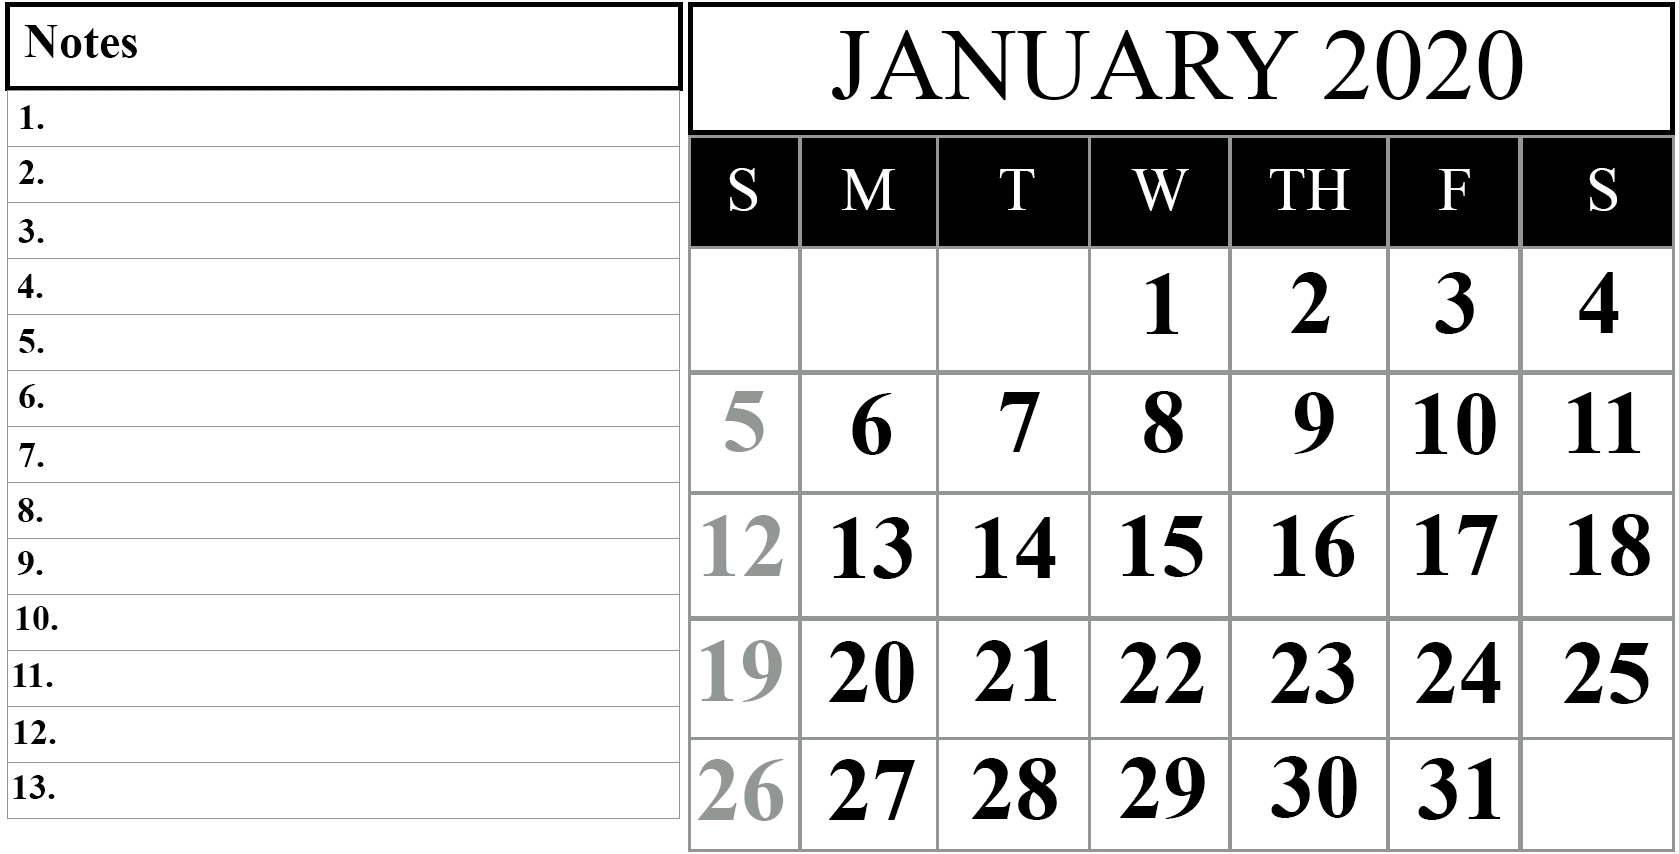 Free January 2020 Printable Calendar Template In Pdf, Word-January 2020 Yearly Calendar